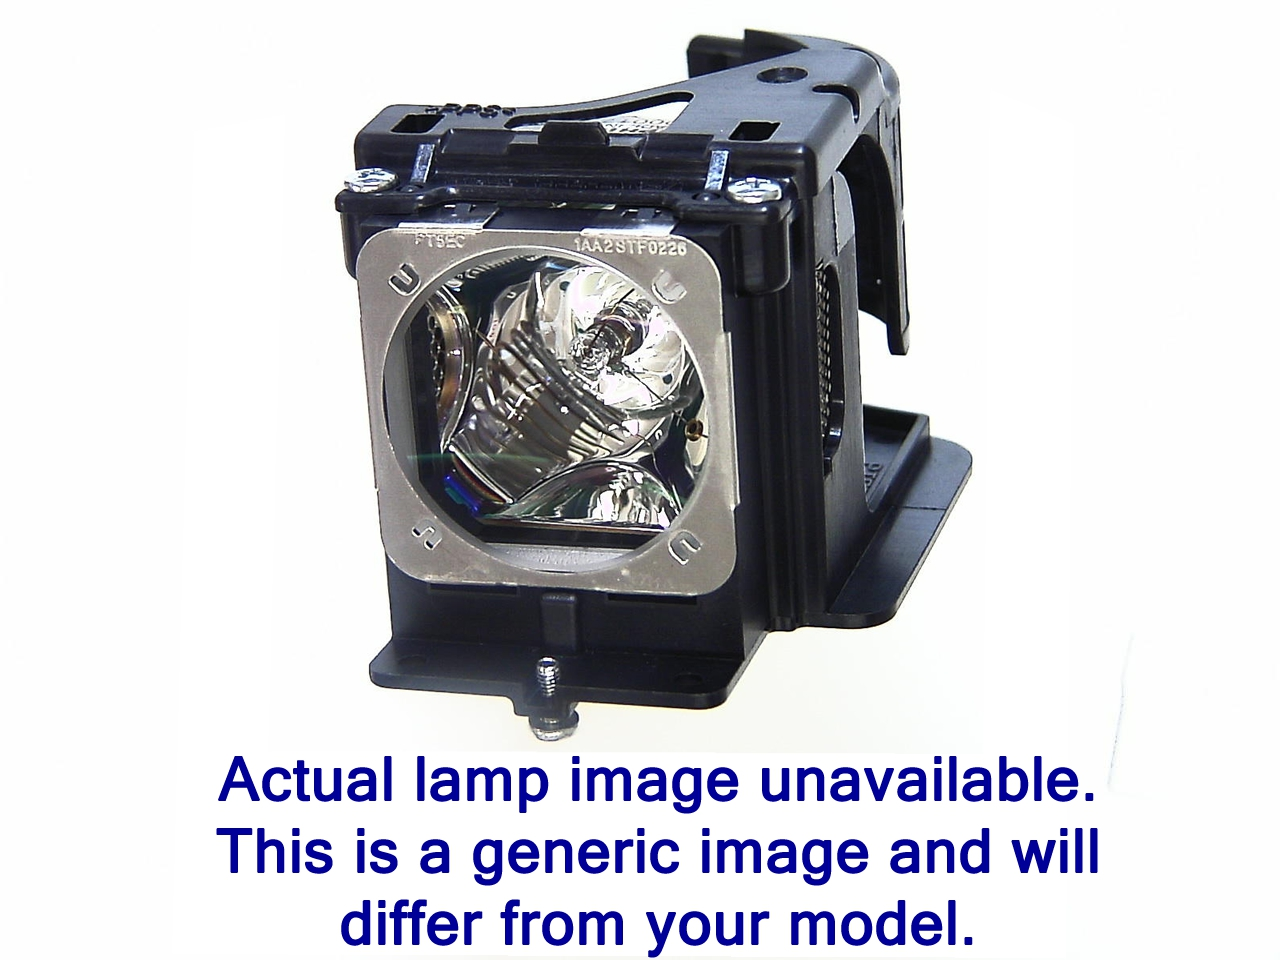 Smart Lamp for Serial Numbers 2101 a 2600 inclusive For EIKI LC-XB25 (XB2501 Lamp) Proyector.